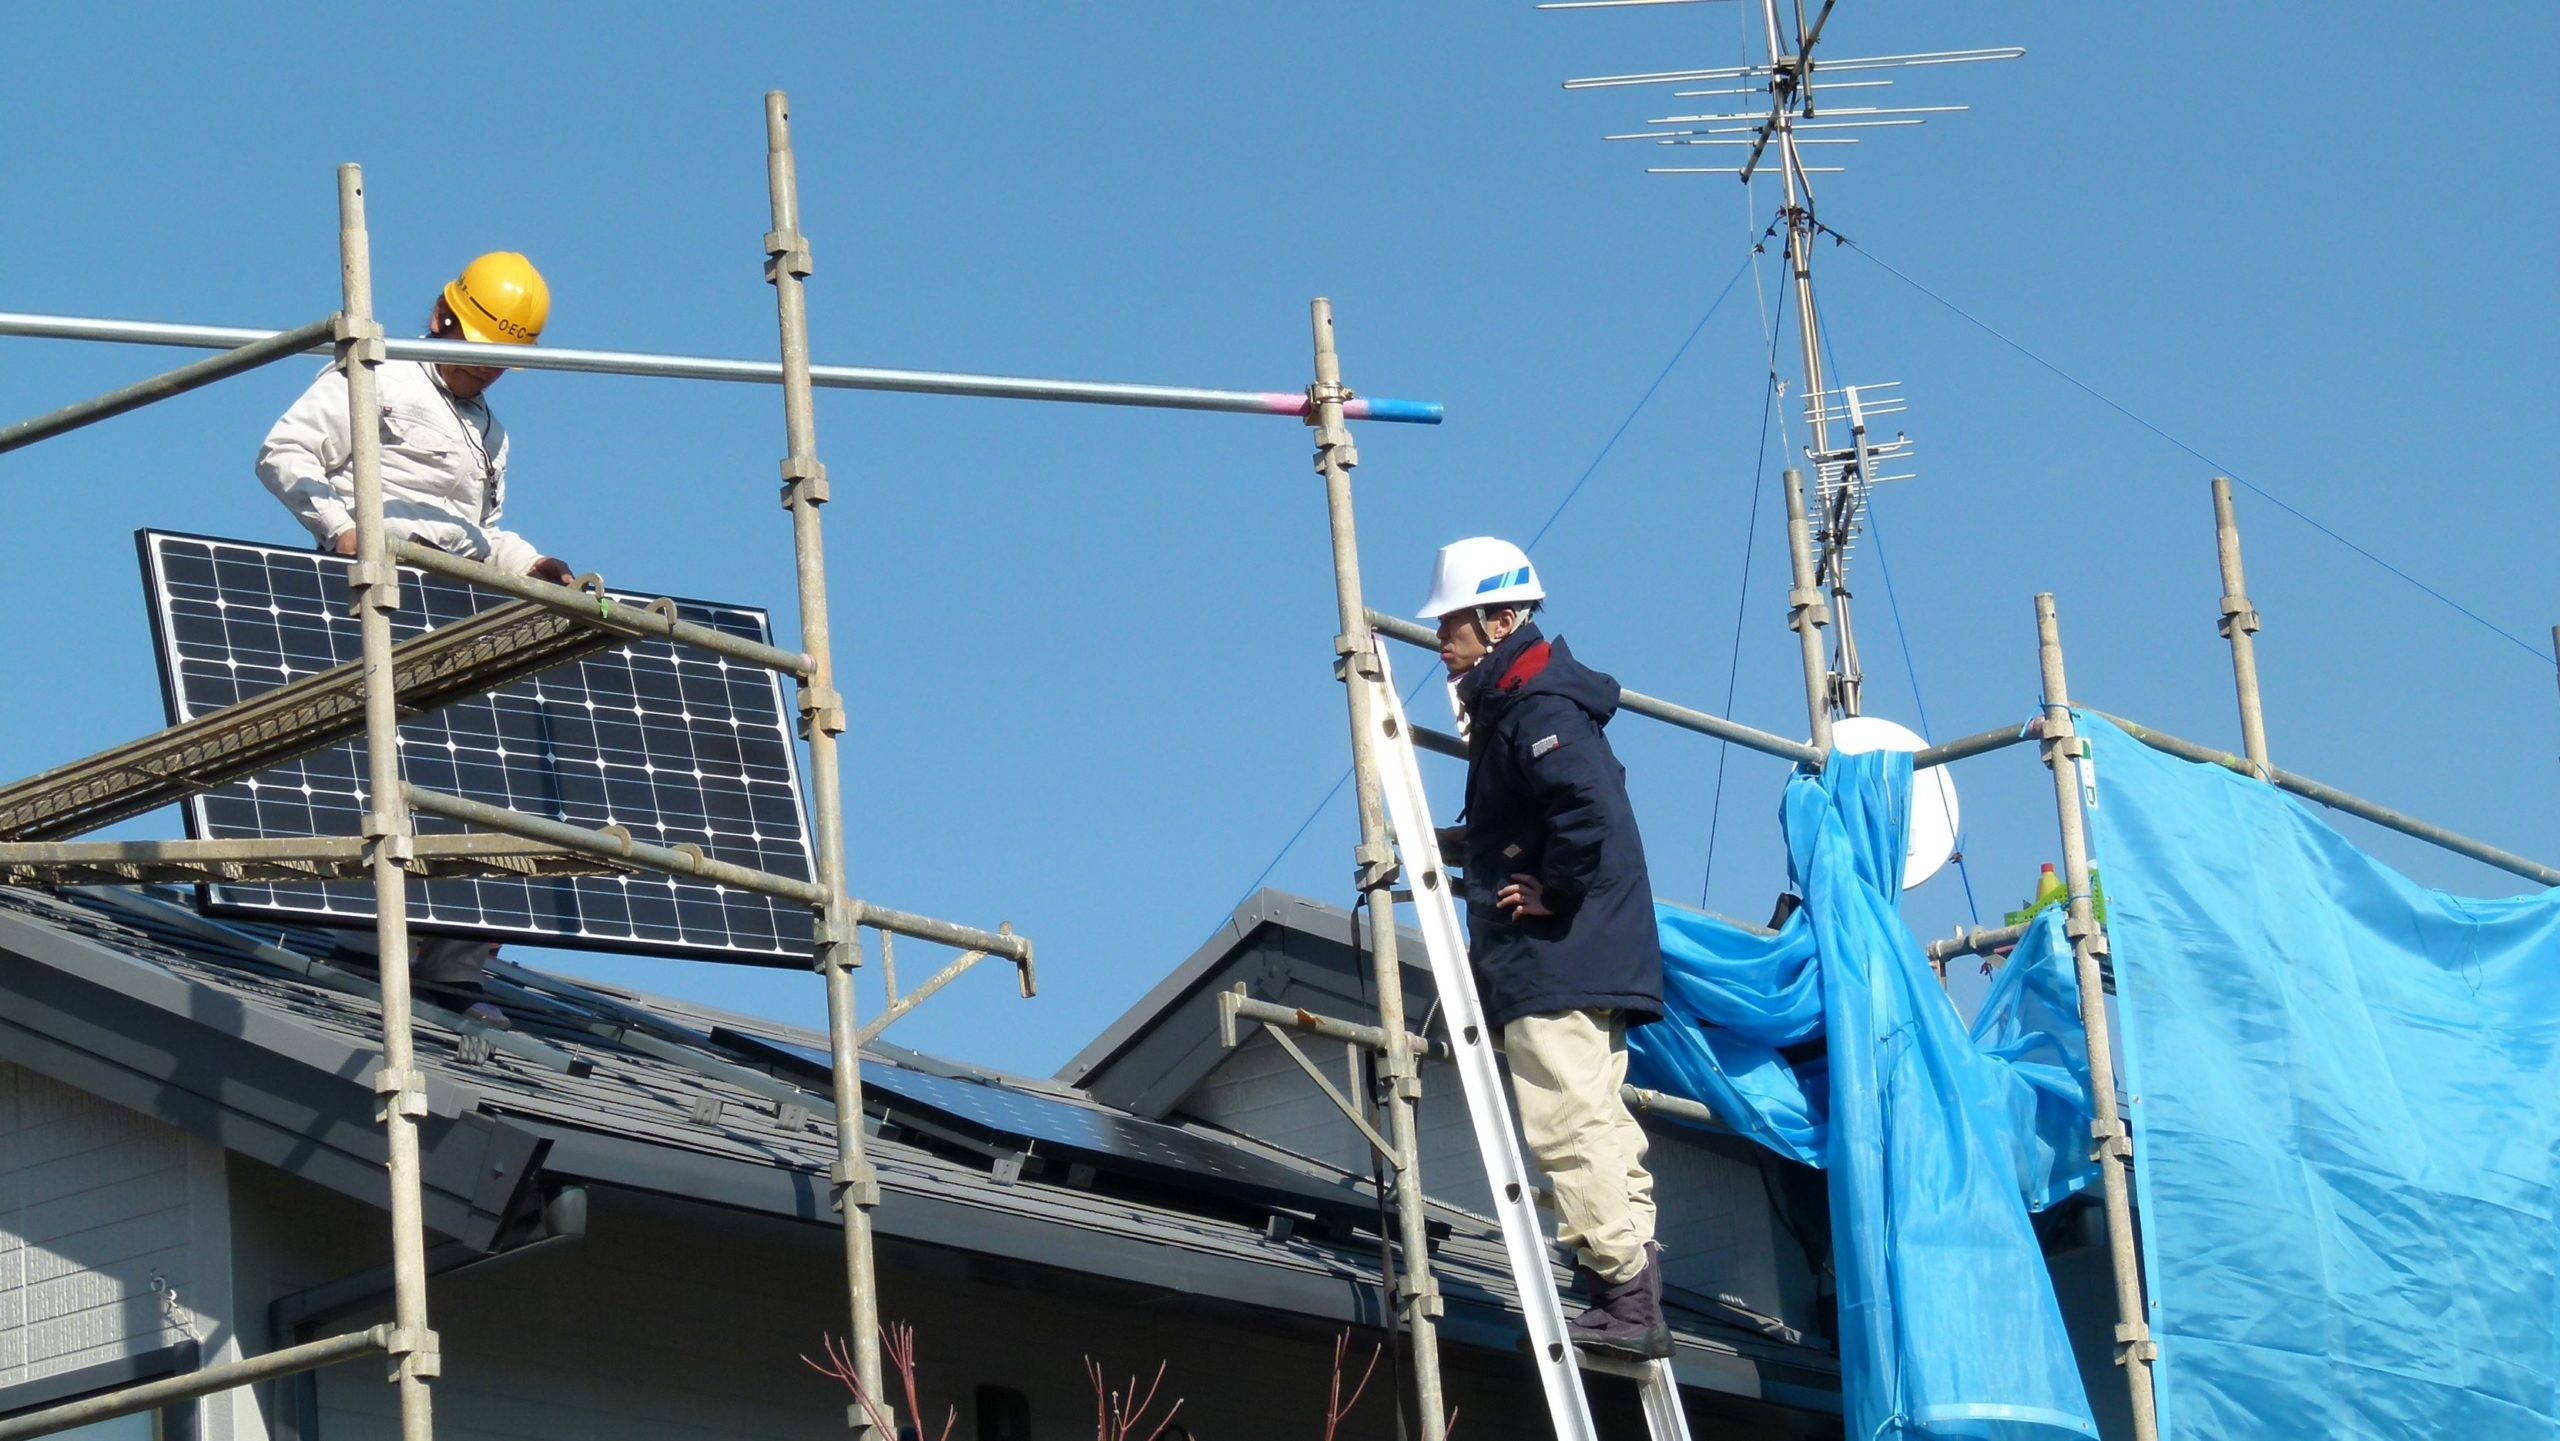 The past month has been misearable for Nevada solar instllaers. Image: Bernd / Flickr